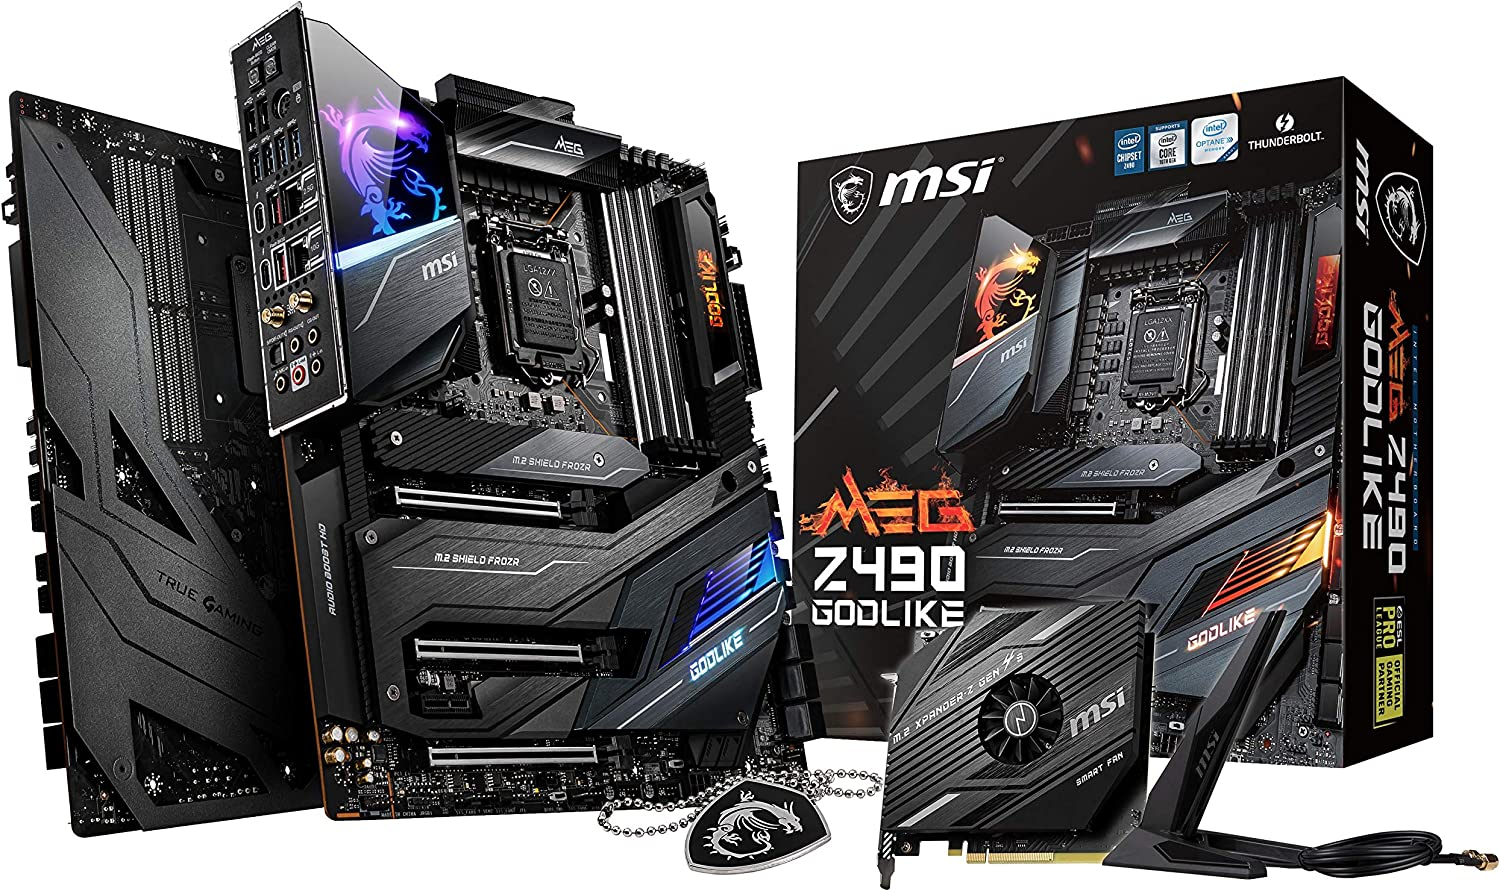 MSI MEG Z490 GODLIKE Gaming Motherboard (E-ATX, 10th Gen Intel Core, LGA 1200 Socket, DDR4, SLI/CF, Triple M.2 Slots, Thunderbolt 3 Type-C, Wi-Fi 6, Mystic Light RGB)